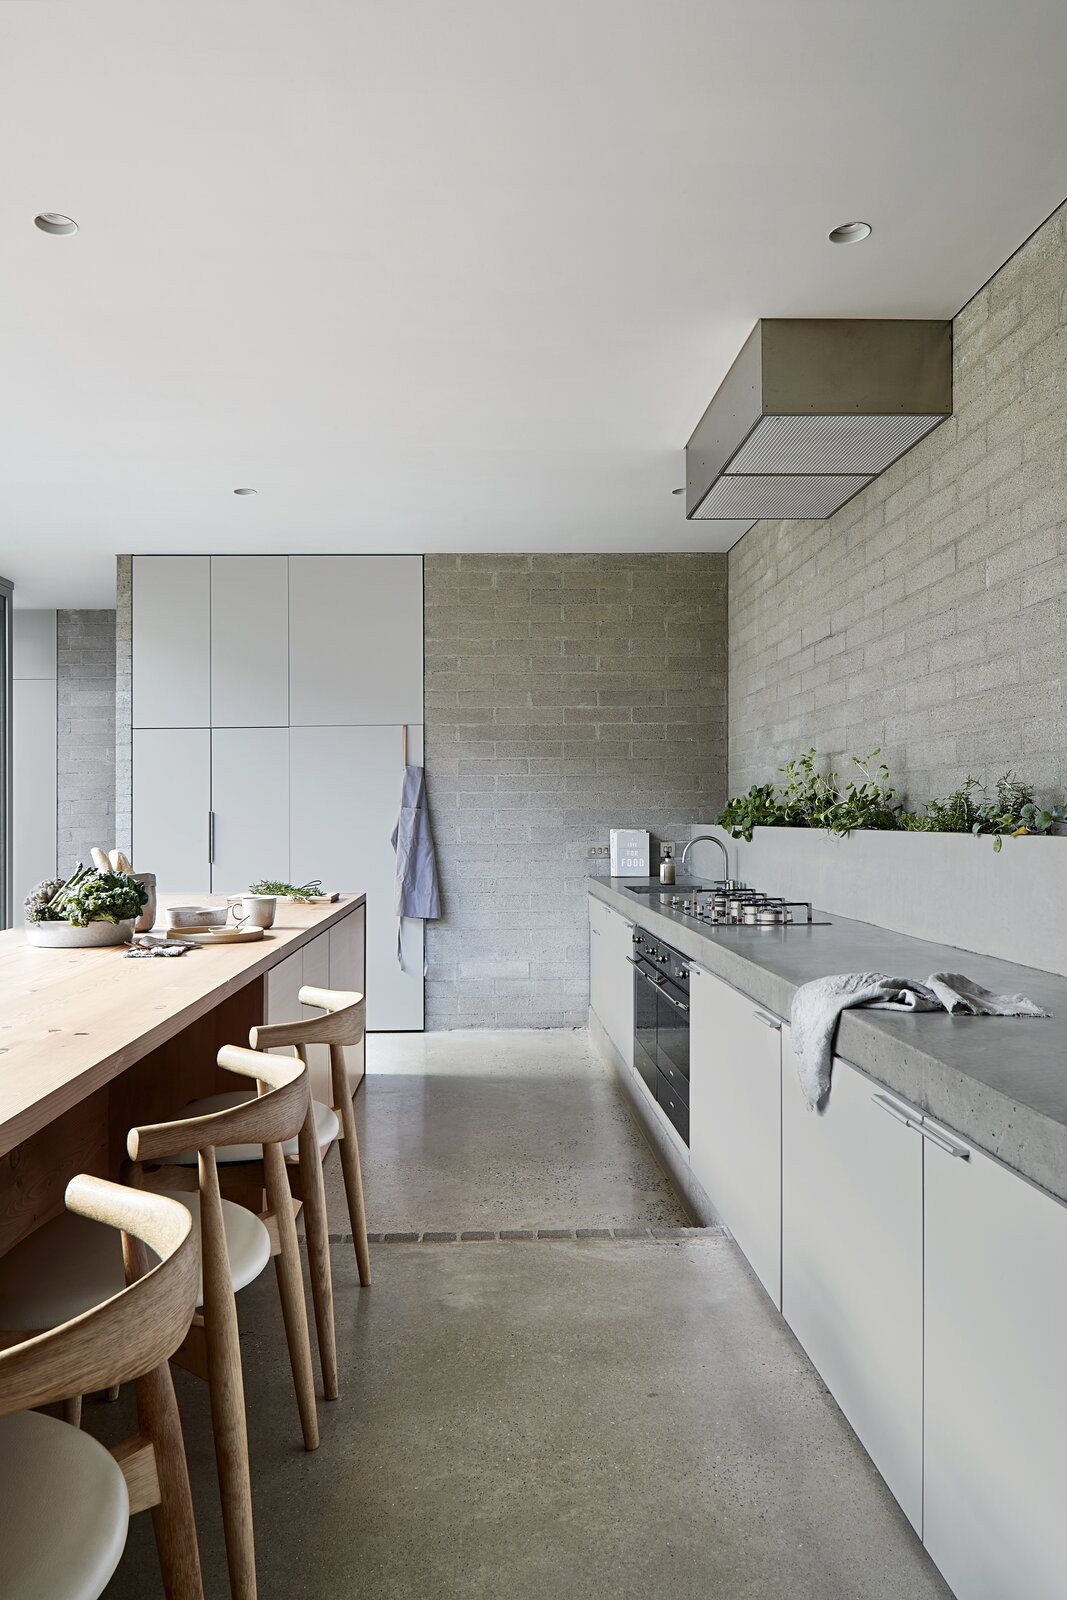 Kitchen, Concrete Counter, Concrete Floor, Brick Backsplashe, Range, Recessed Lighting, Cooktops, and Range Hood  Photo 2 of 20 in A Concrete House Is Softened by an Airy Internal Courtyard, Complete With an Olive Grove from Ruxton Rise Residence